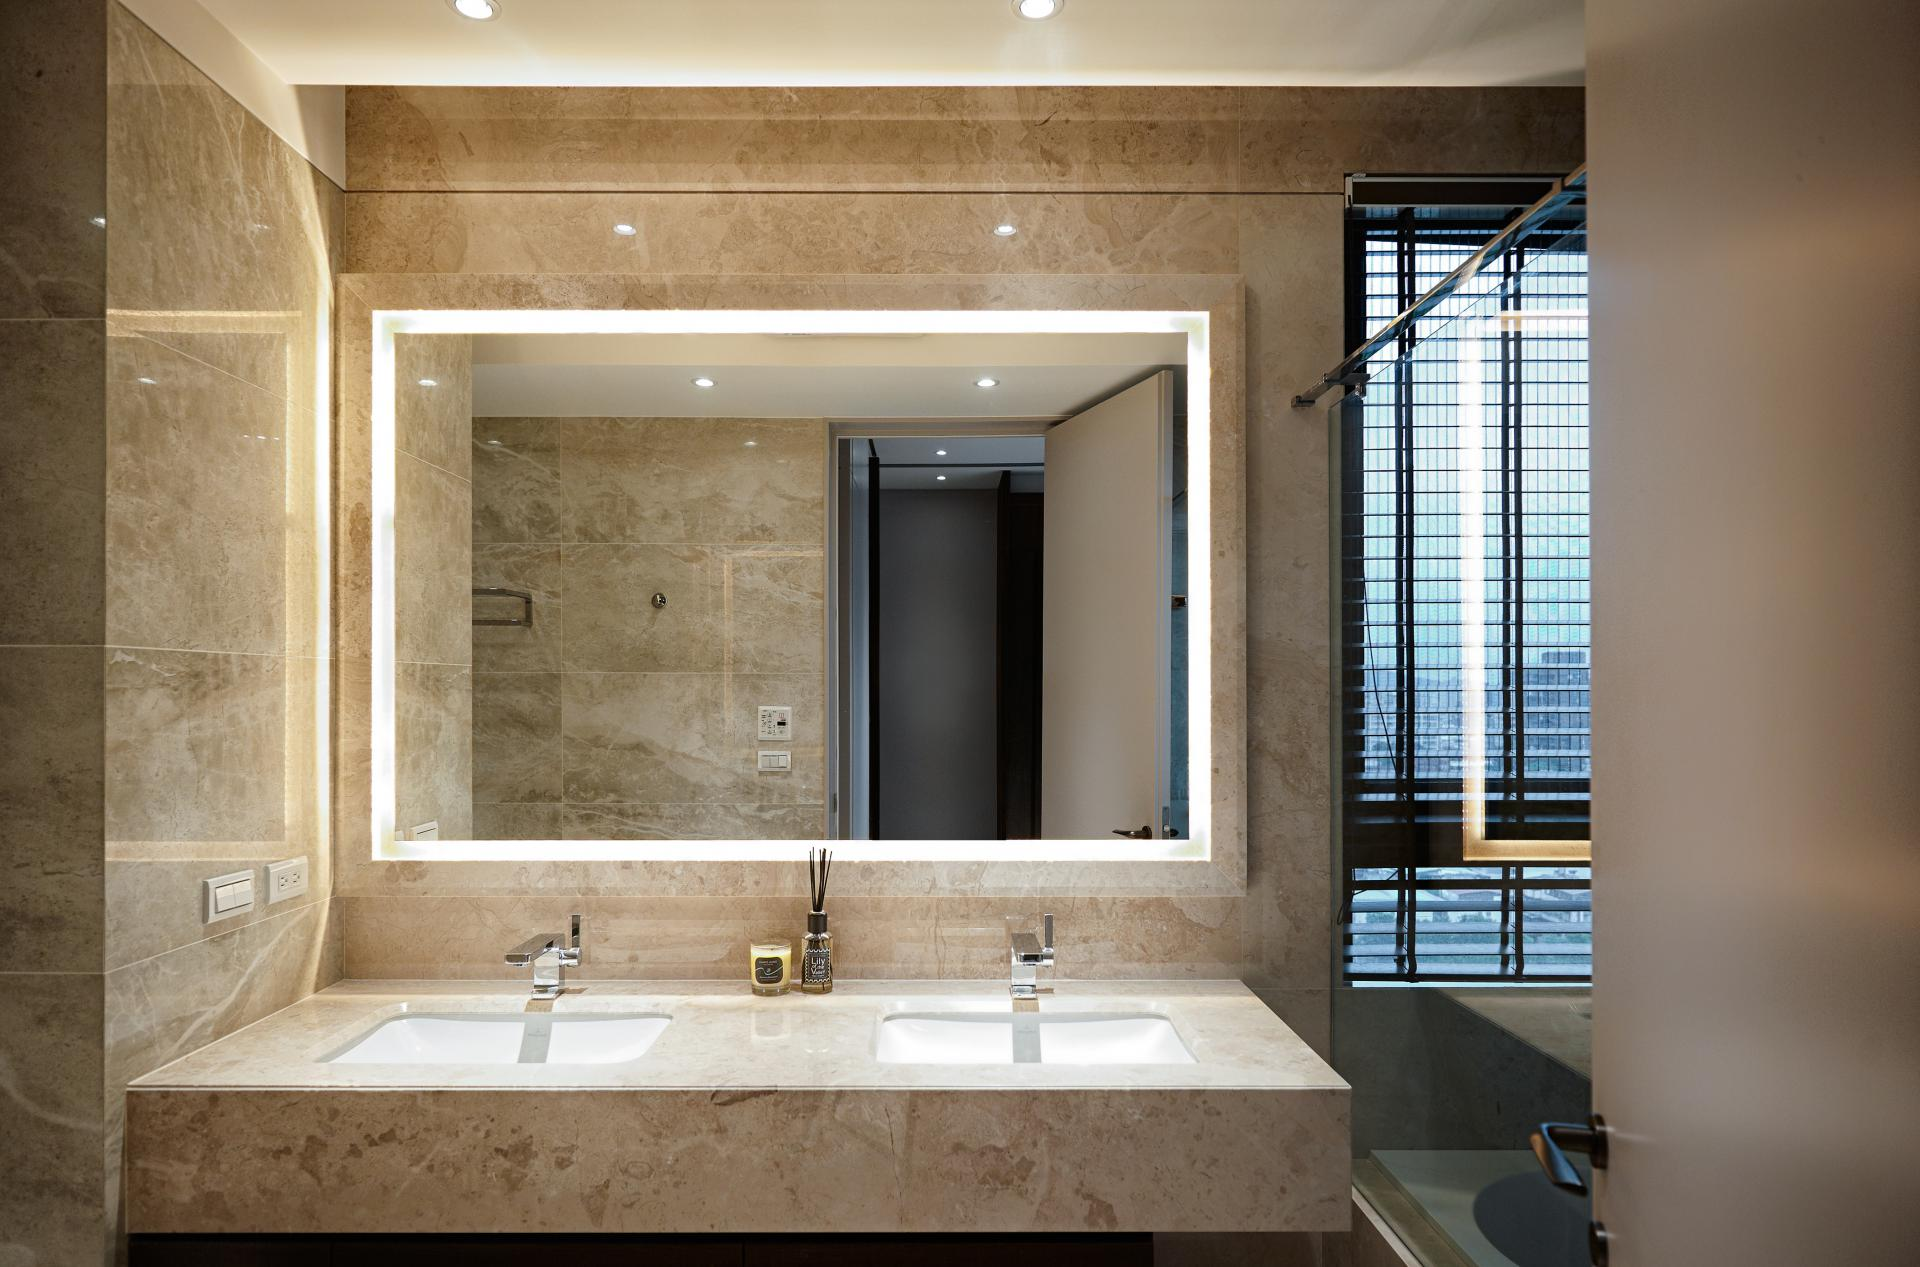 Two taiwan homes take beautiful inspiration from nature - Bathroom design ...